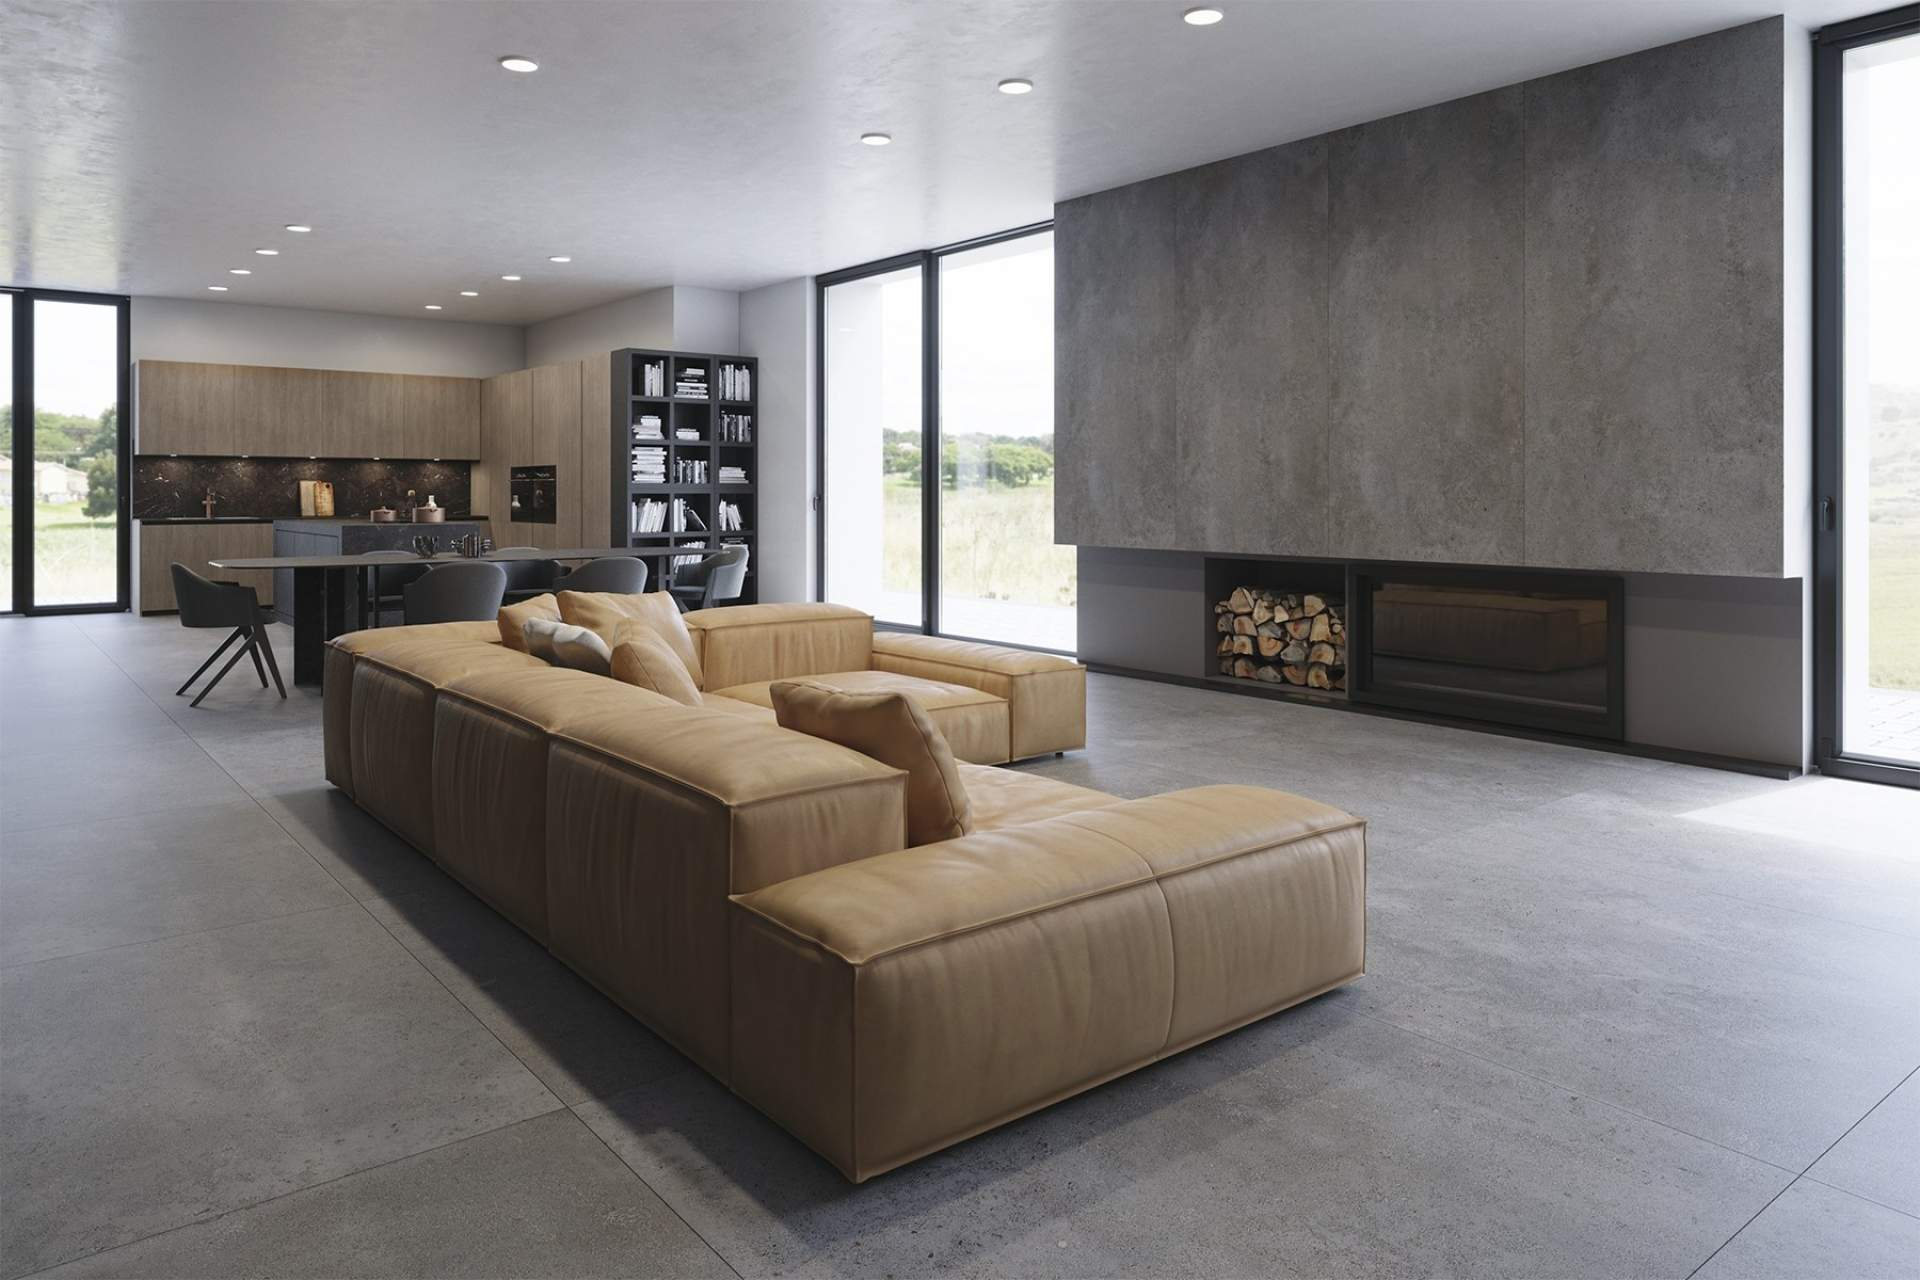 Industry open plan lounge setting using Grey Tile